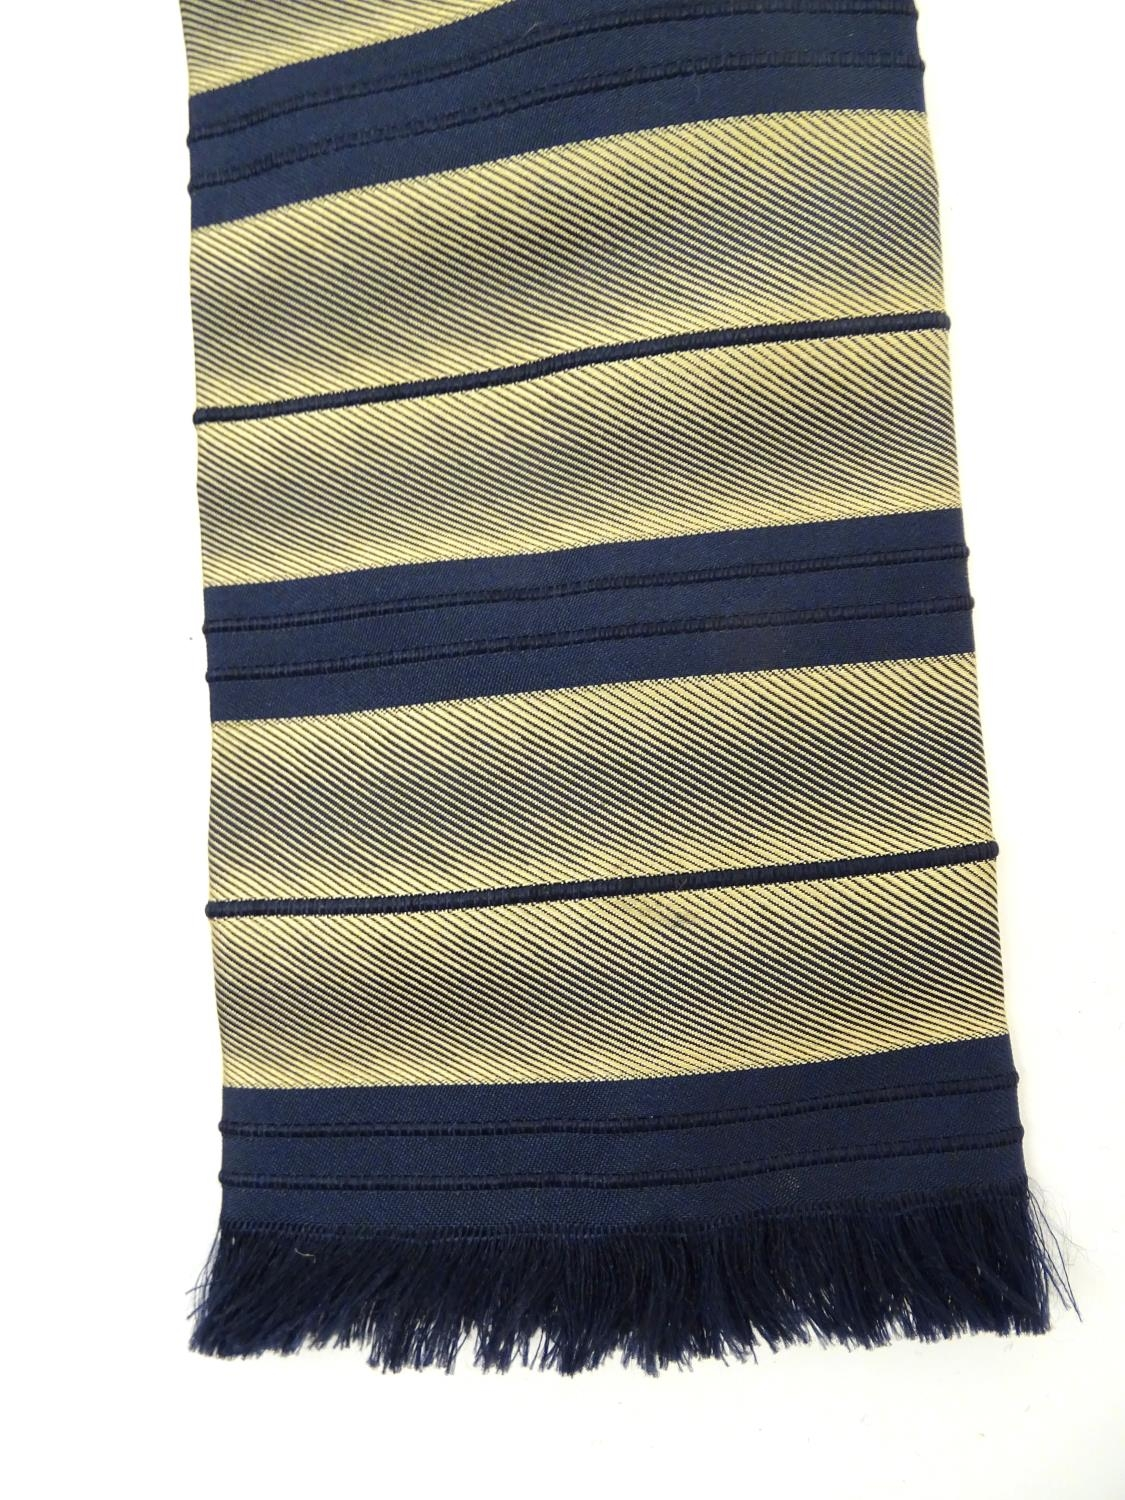 Vintage clothing/ fashion: 6 silk ties in various colours and patterns by Yves Saint Laurent, Nicole - Image 6 of 10